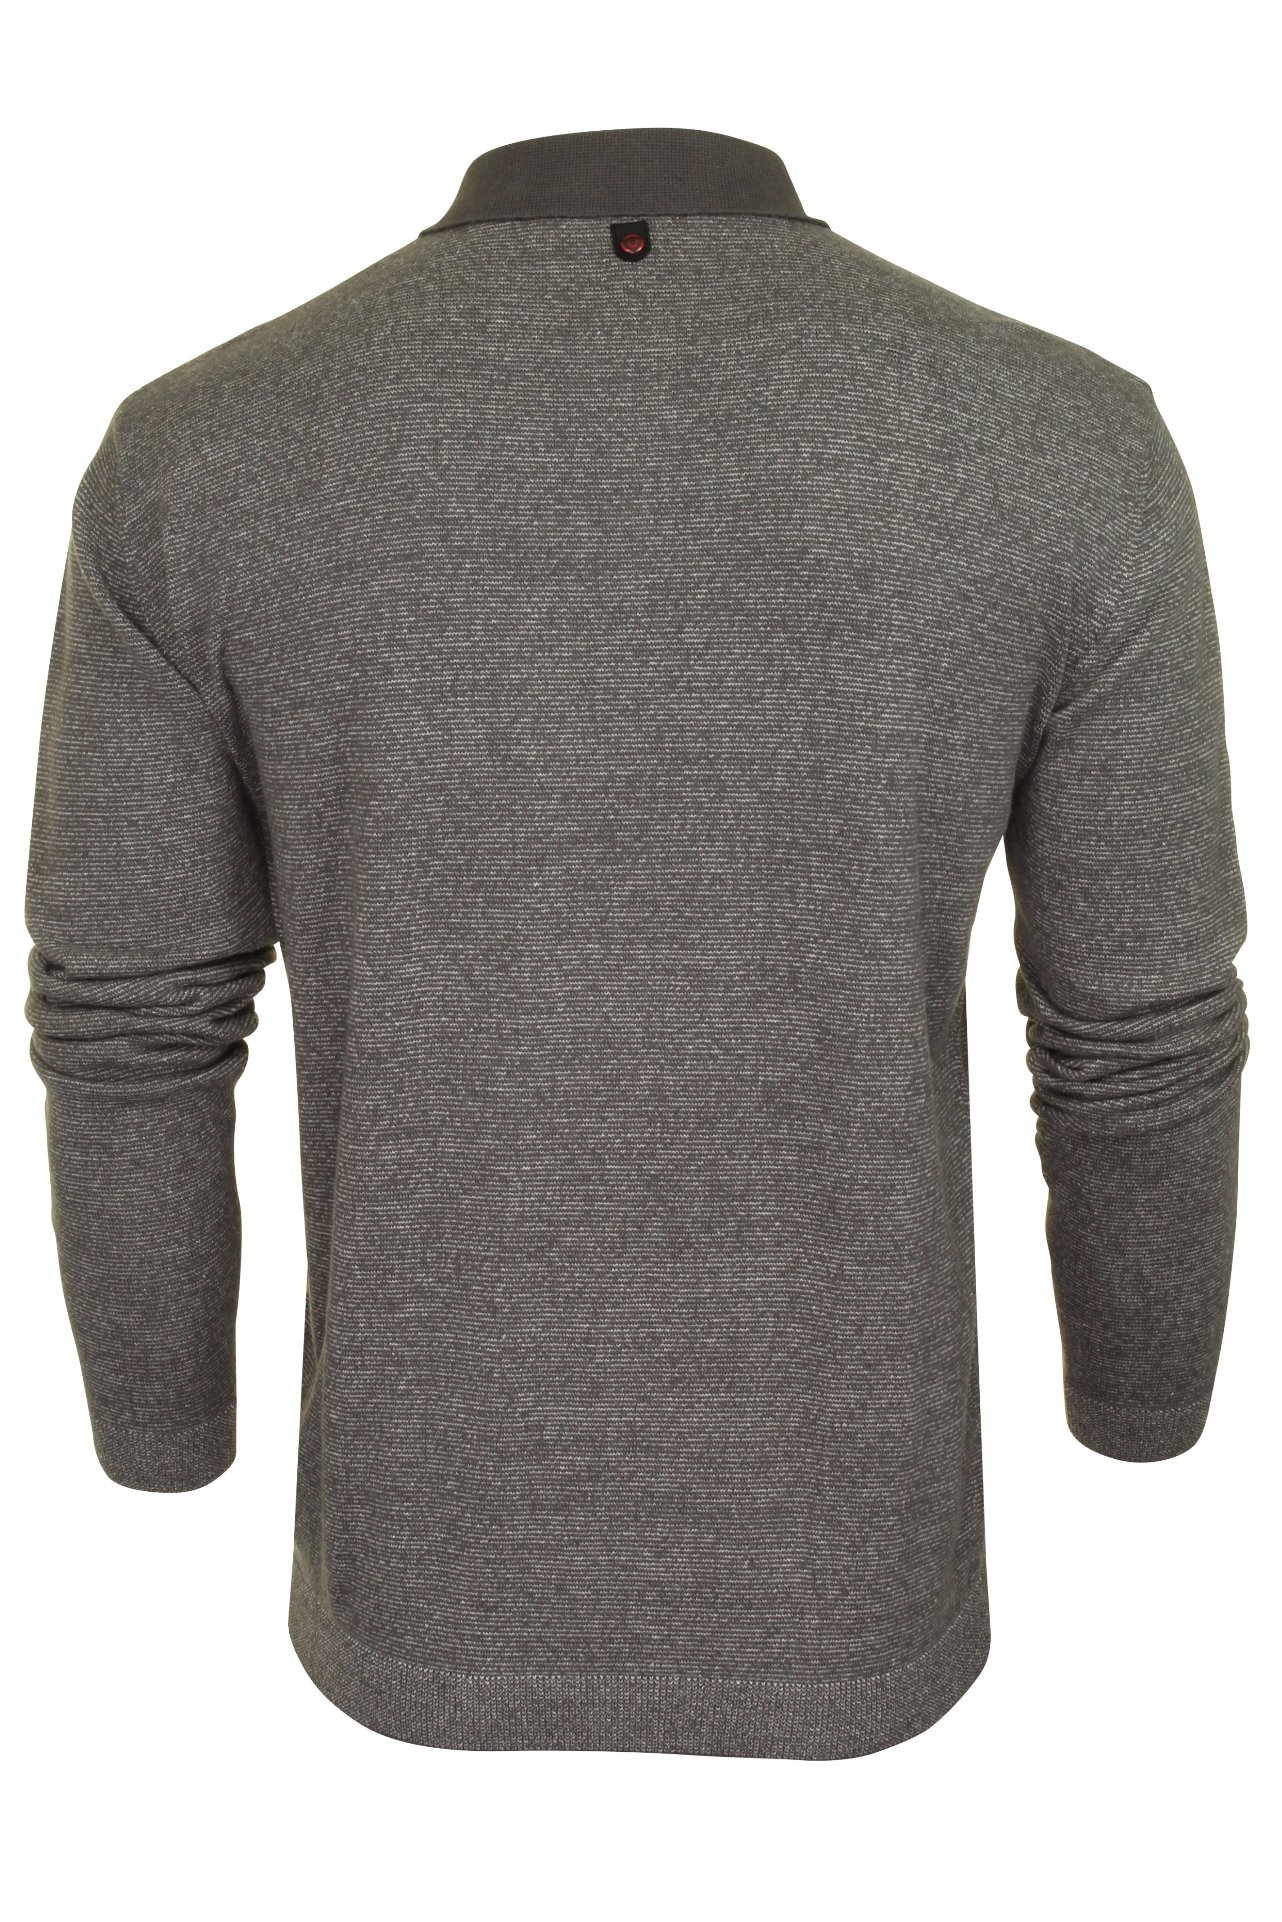 Duck-and-Cover-Mens-039-Cartwright-039-Knitted-Polo-Shirt-Long-Sleeved thumbnail 5